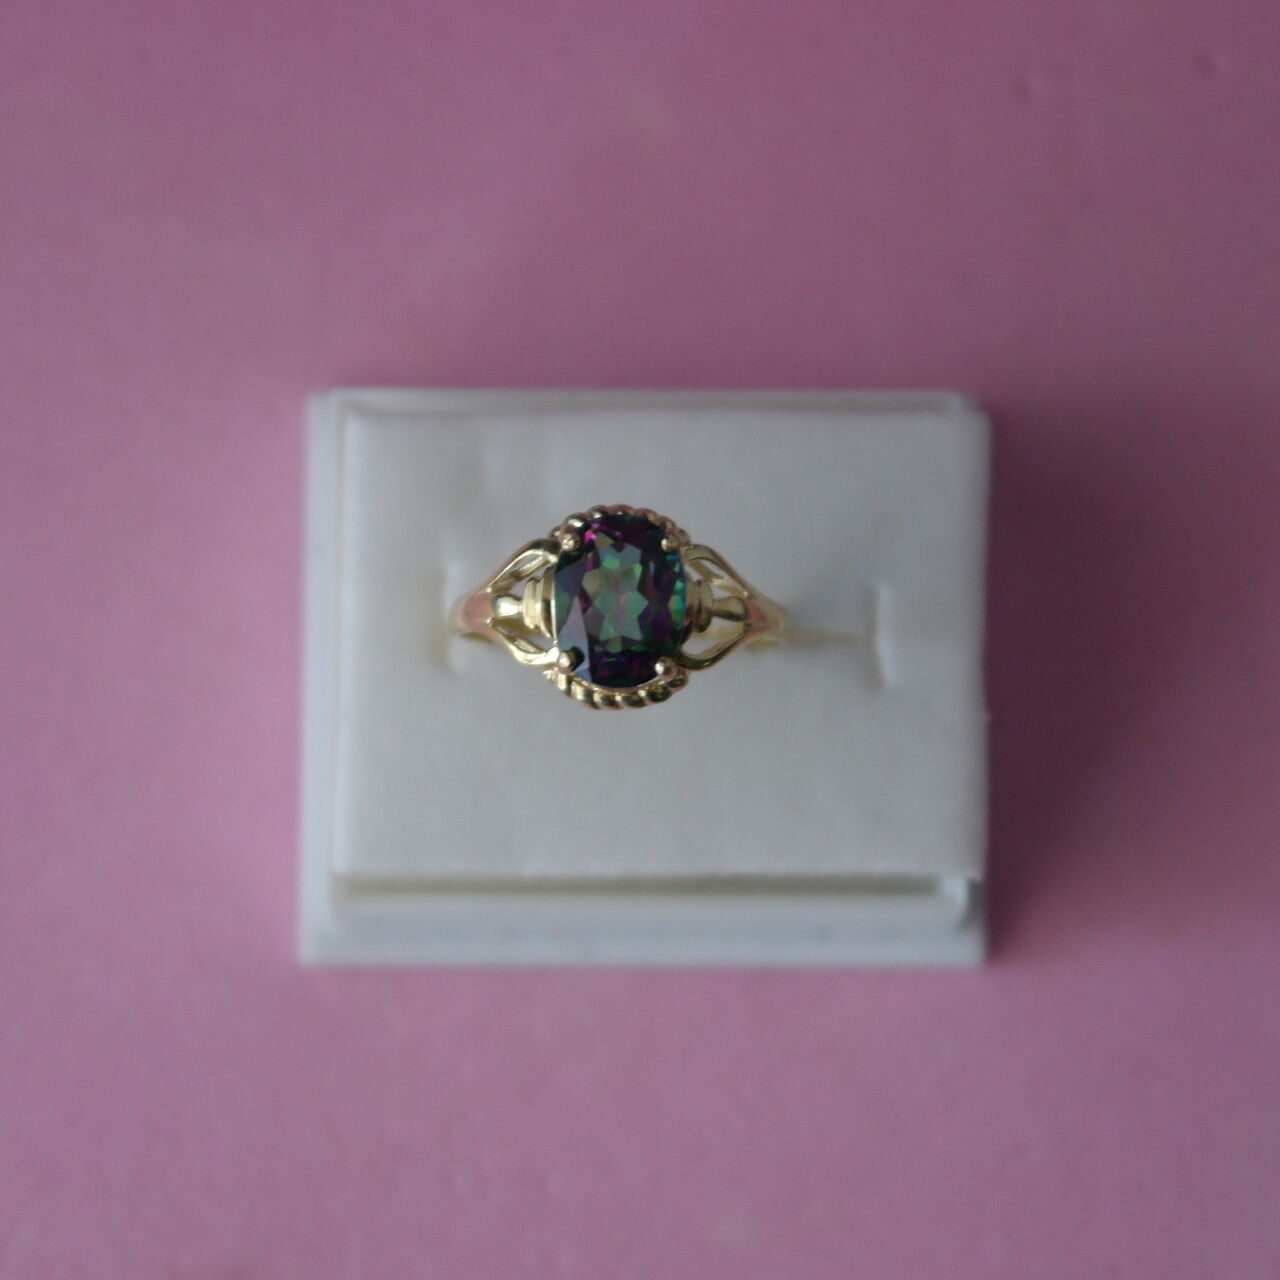 BEAUTIFUL 9CT YELLOW gold OVAL CUT MYSTIC TOPAZ RING SIZE O IN GIFT BOX